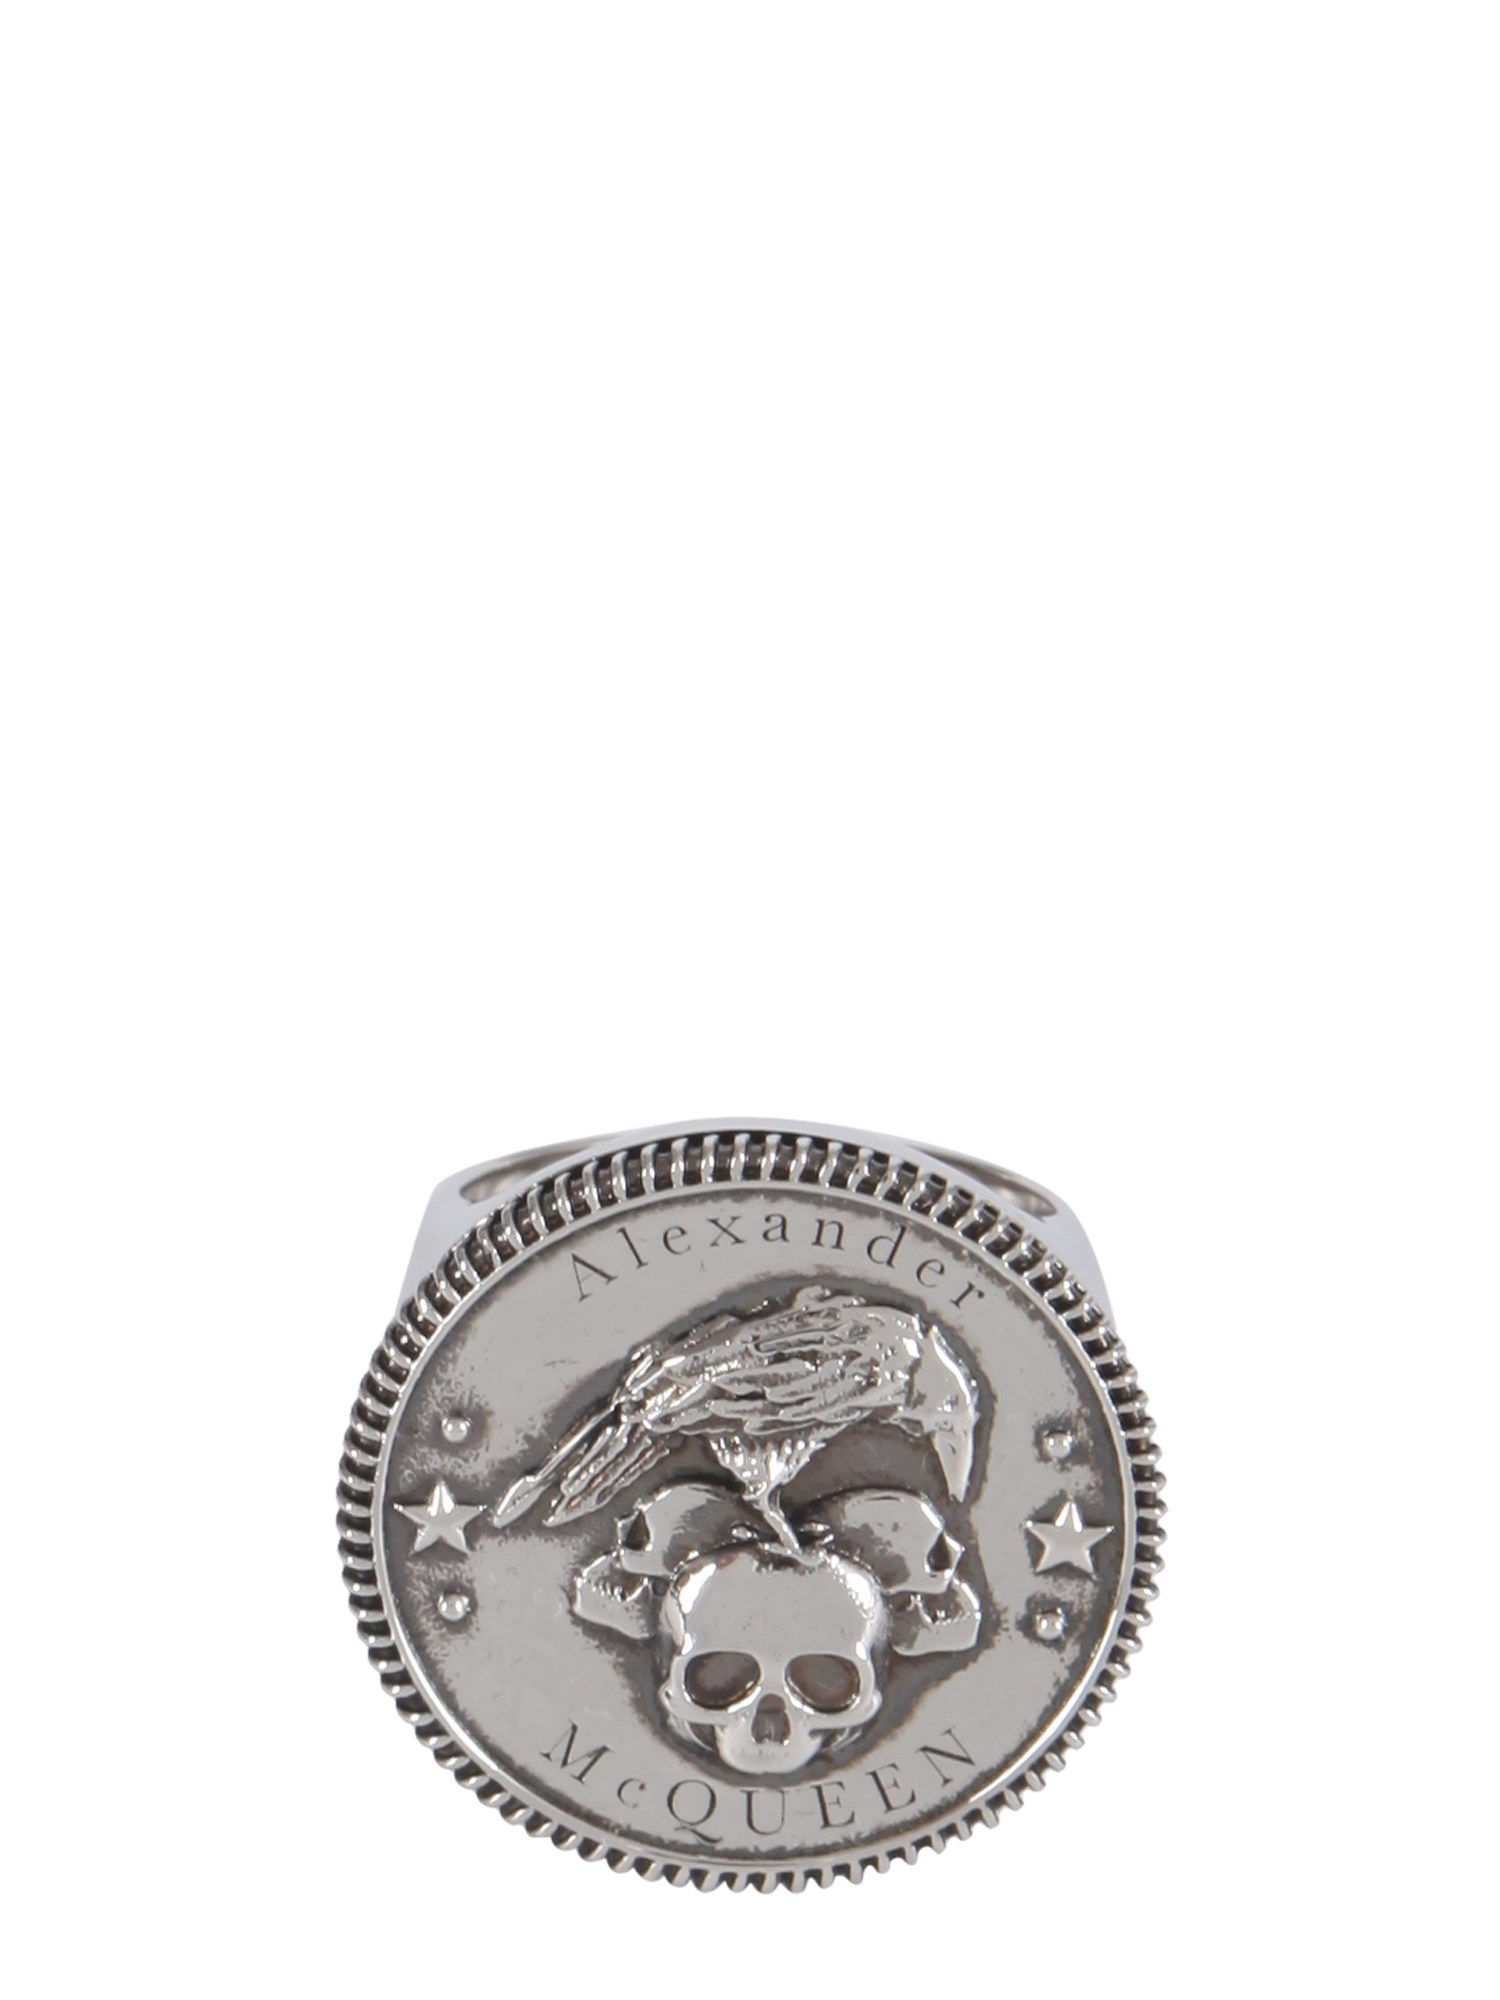 Alexander Mcqueen CROWN AND SKULL RING